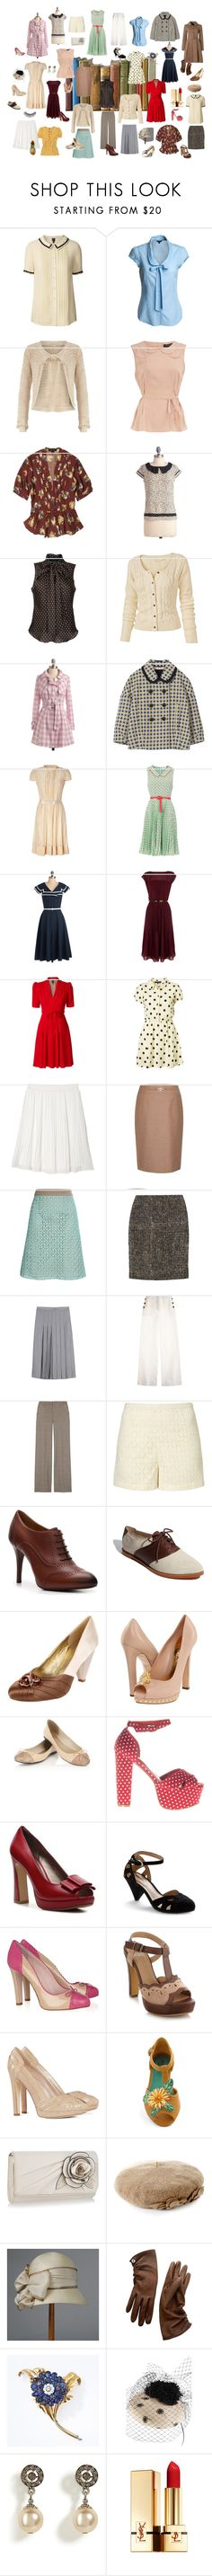 """Nancy Drew Chic"" by nancey-bridston-hocking ❤ liked on Polyvore featuring Reception, Orla Kiely, Dorothy Perkins, Tory Burch, Karen Walker, Knitted Dove, Lauren Ralph Lauren, Fat Face, Marni and Collette By Collette Dinnigan"